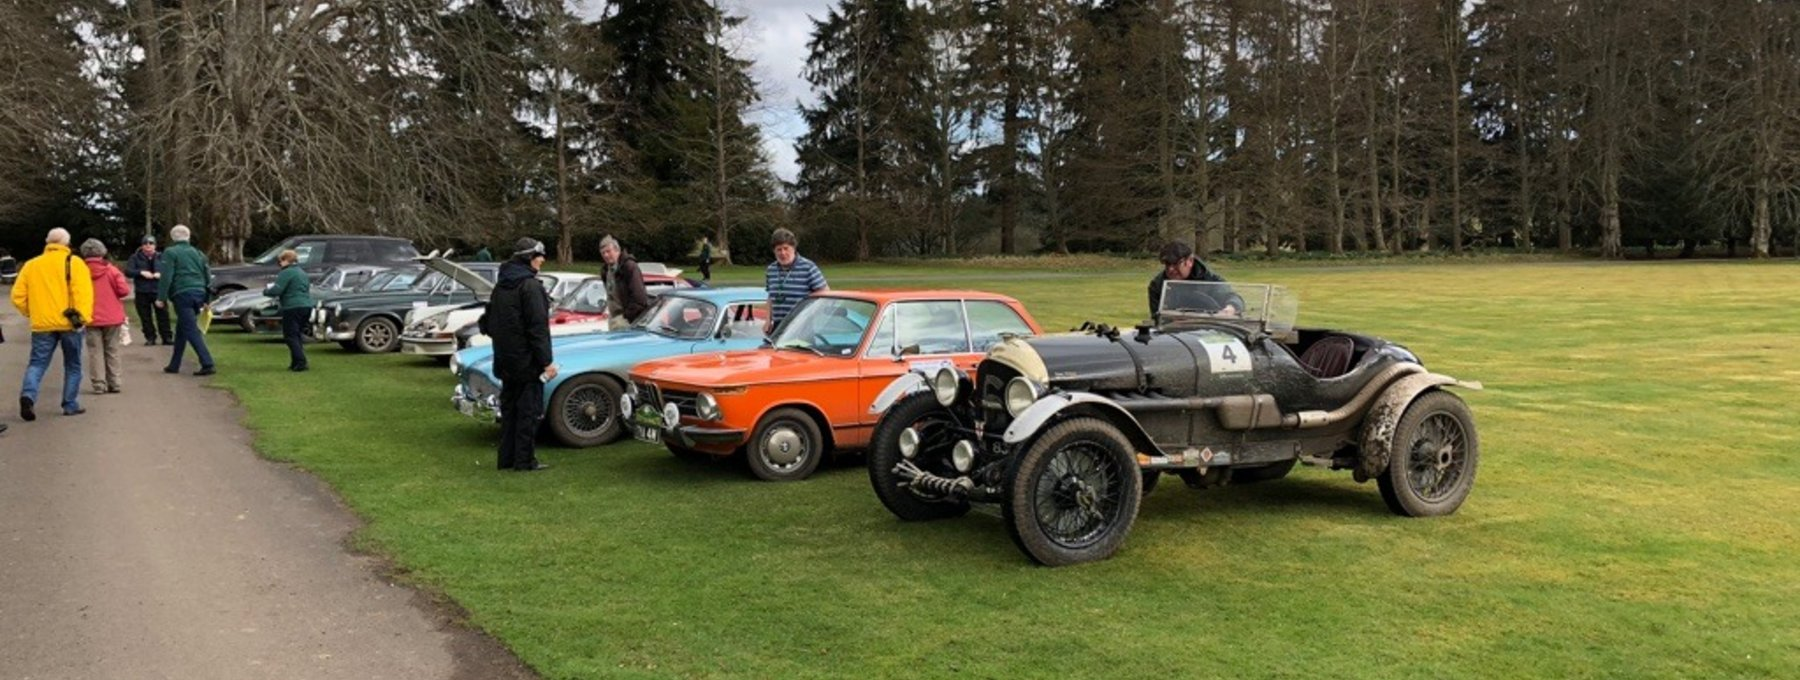 Scottish Malts Classic Car Rally - Murthly Castle makes the perfect stopover point for a car rally - for lunch, tea, coffee or just a registration point. (© Murthly Estate)